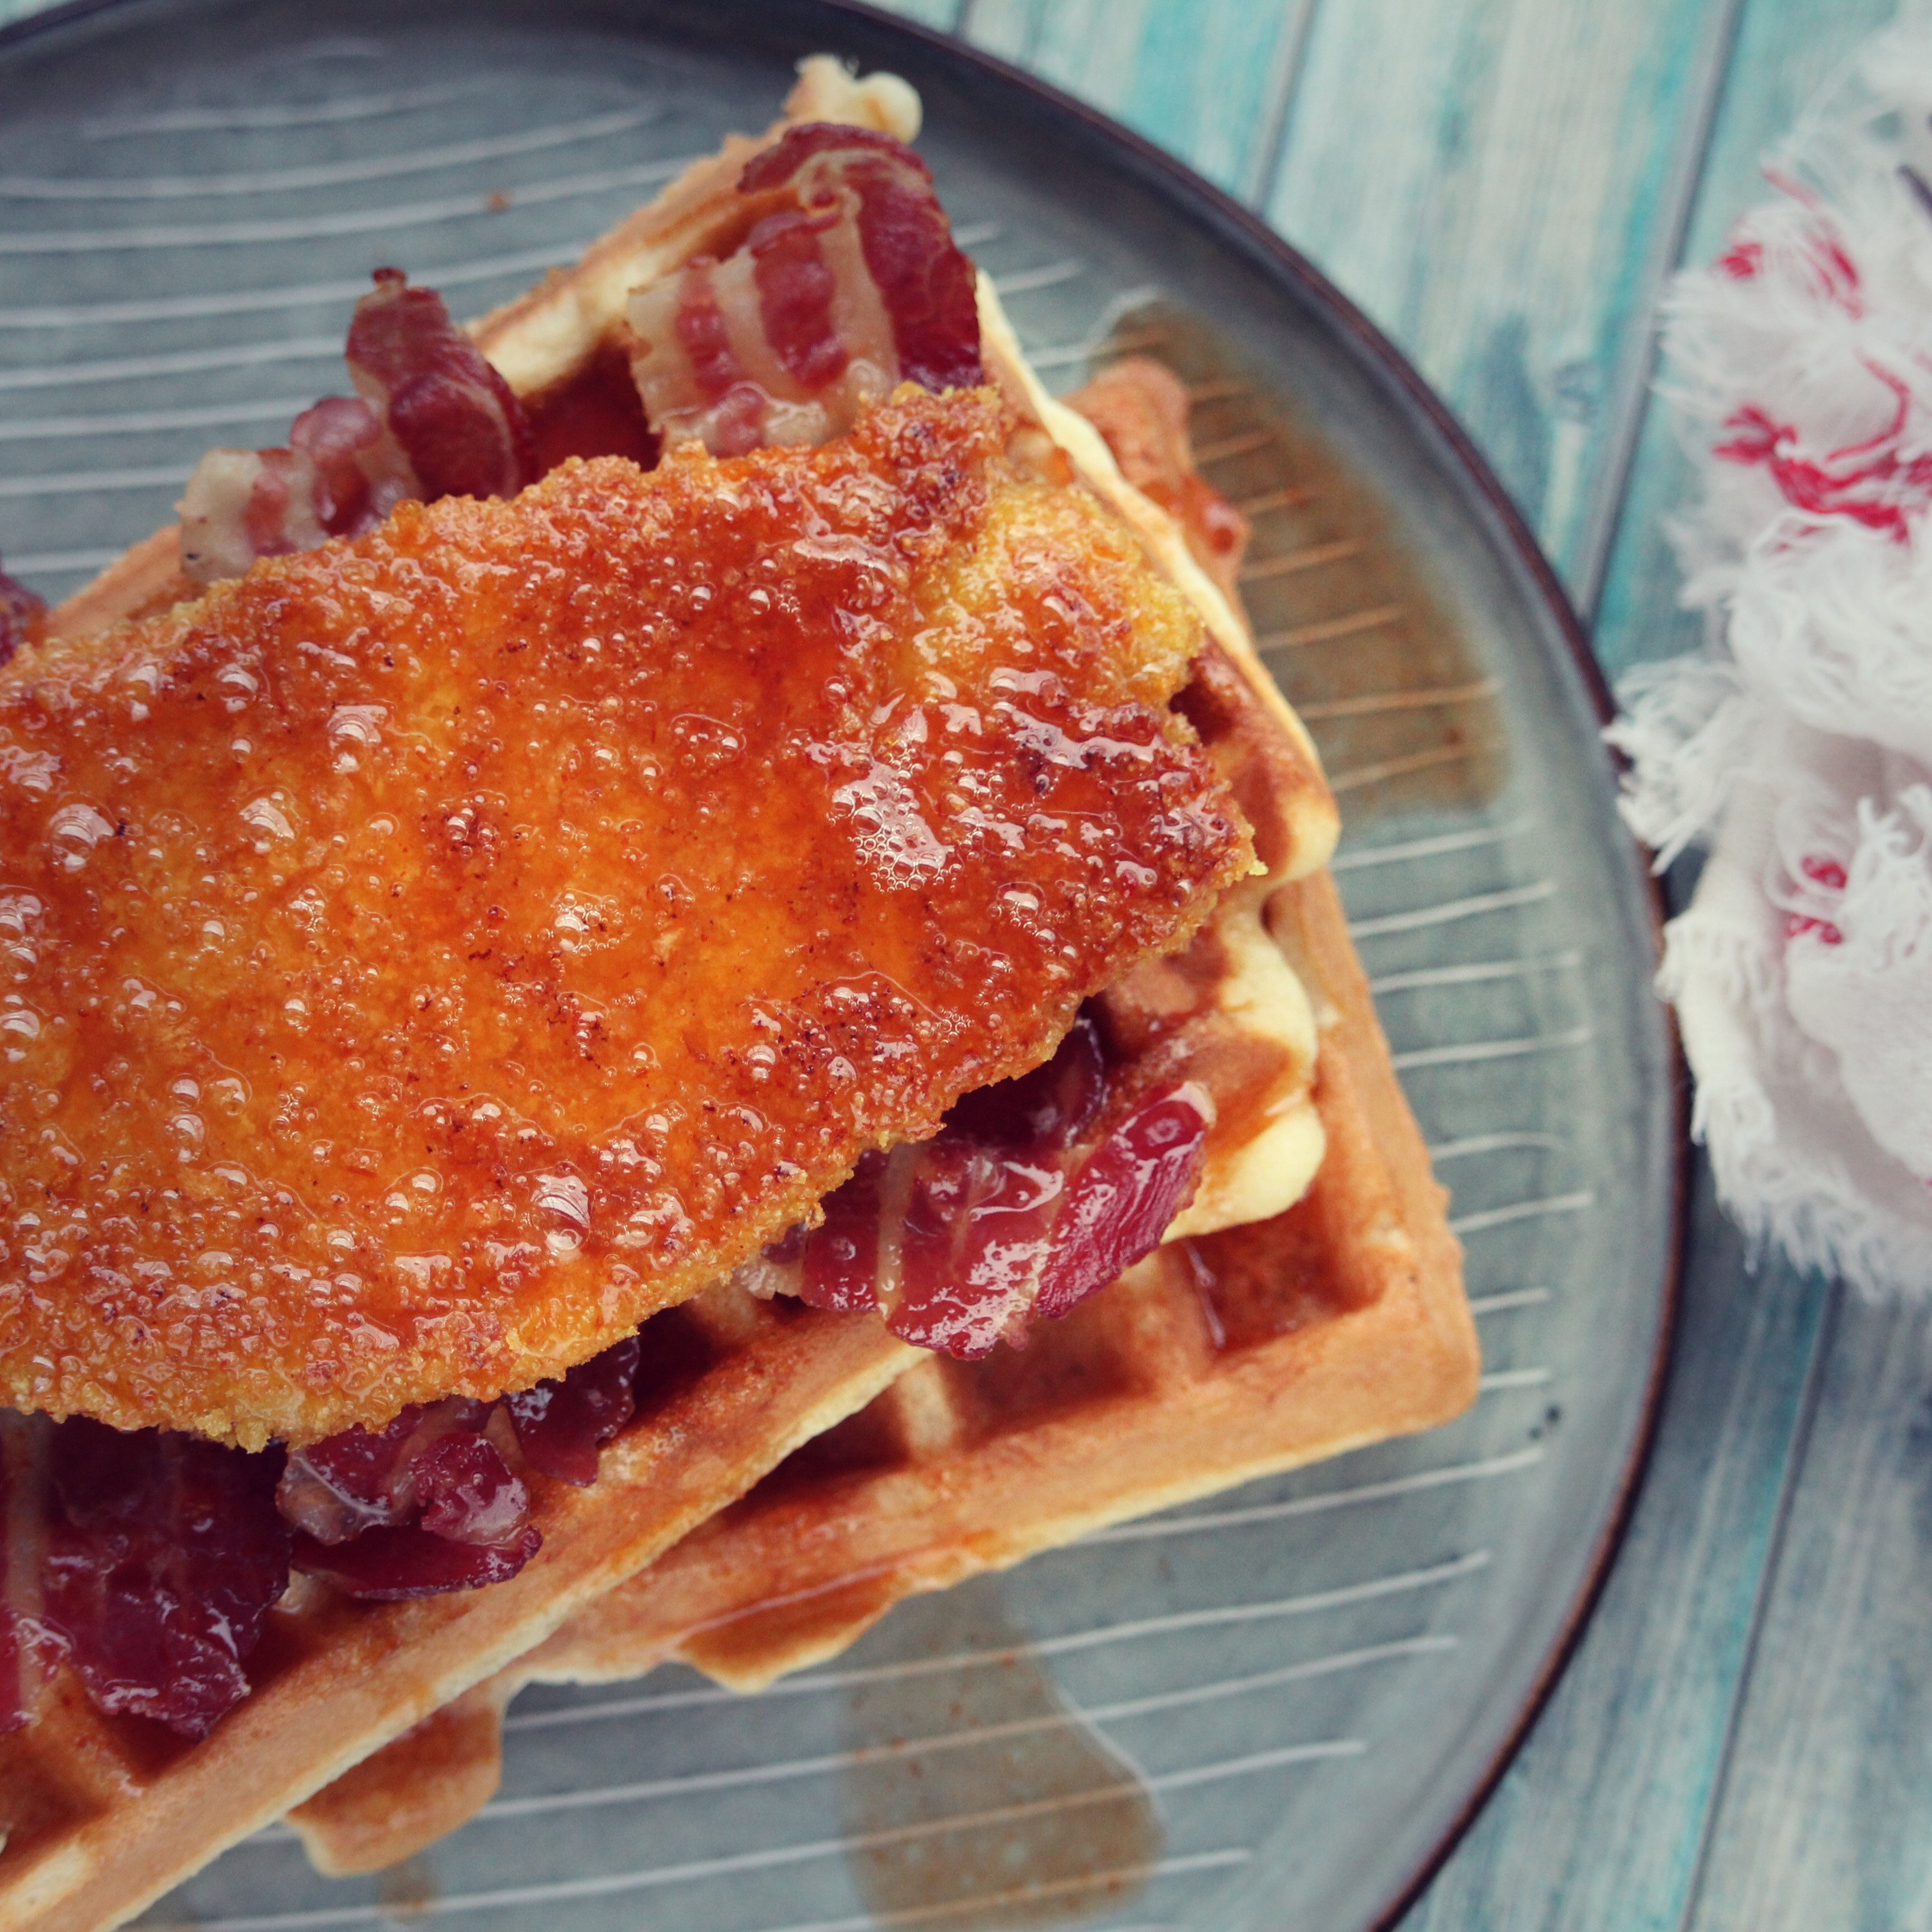 Gluten-Free Chicken and Waffles